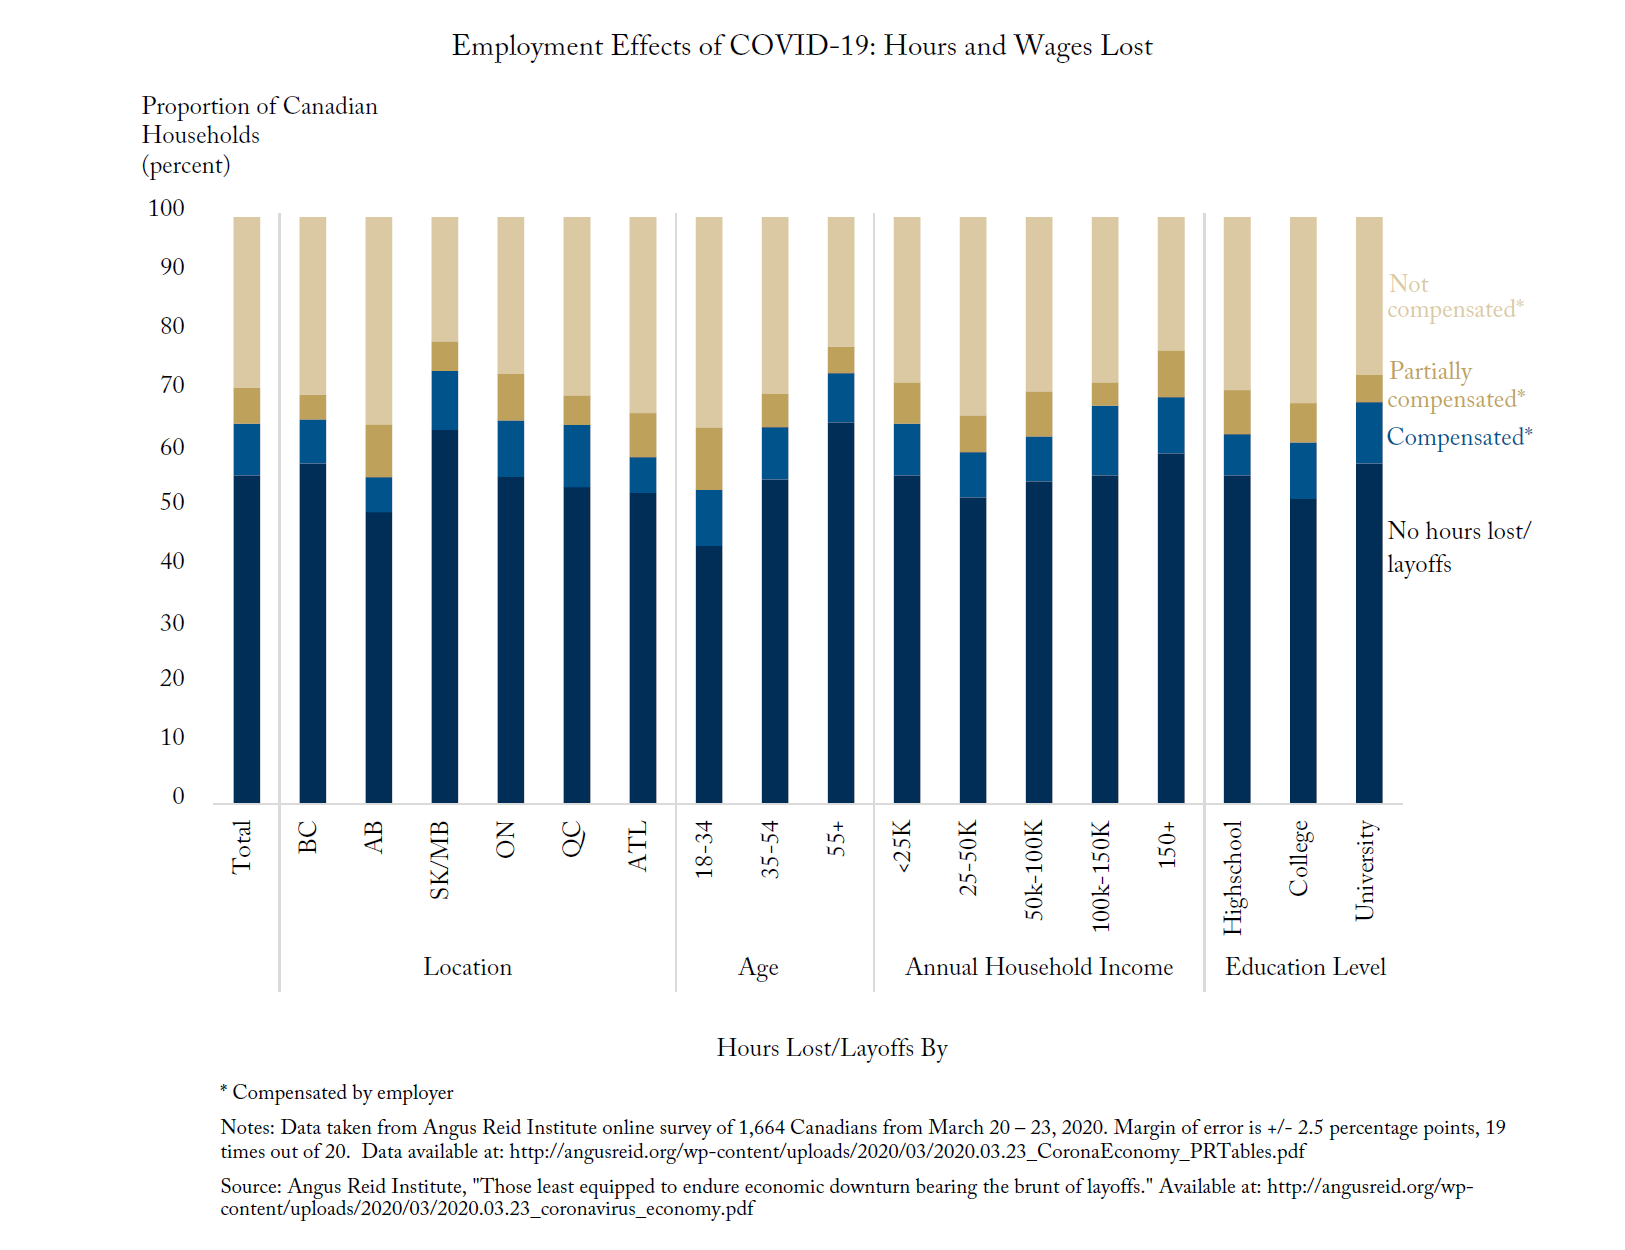 Hitting Home: Hours and Wages Lost to COVID-19 by Location, Age, Income and Education